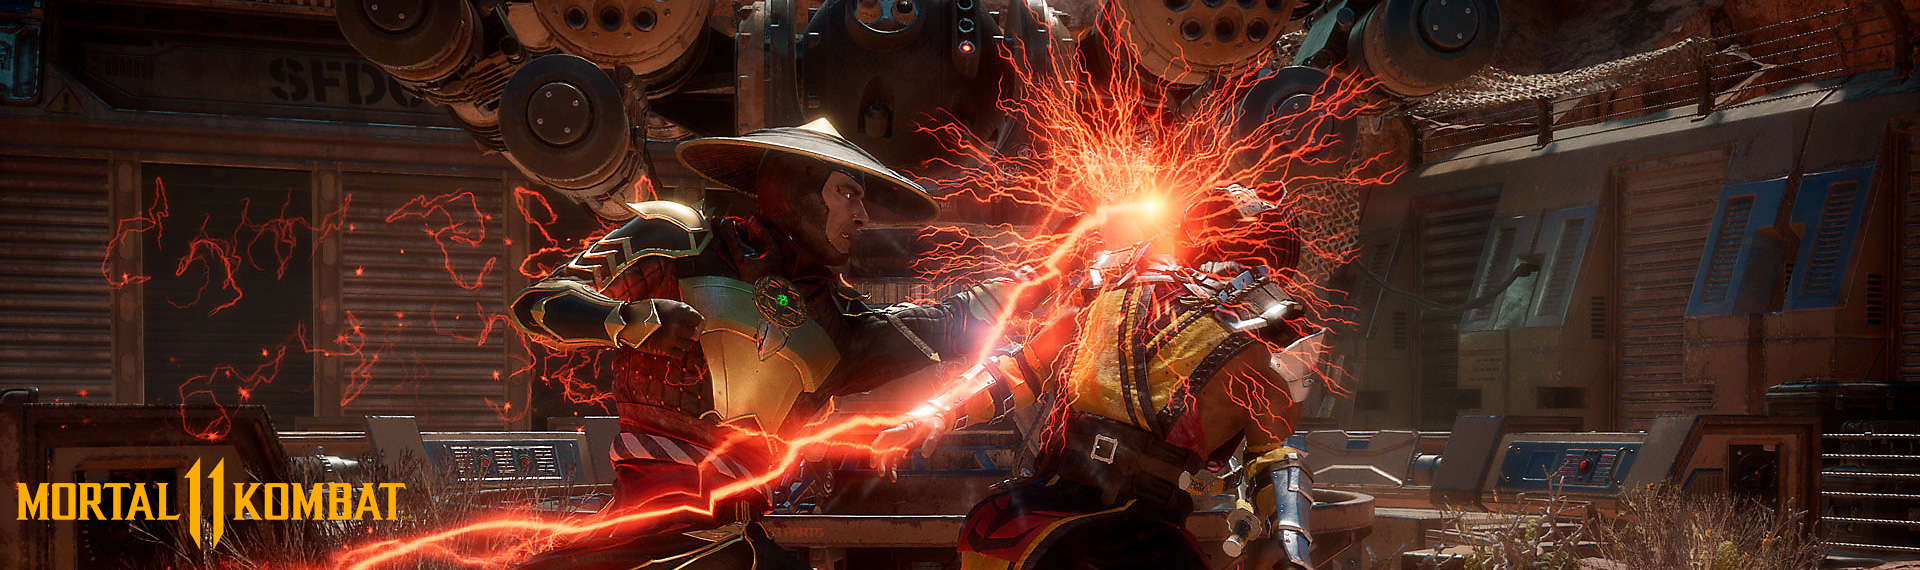 Alasan Mortal Kombat 11 Bisa Jadi Game Fighting PC Favorit Para Gamer